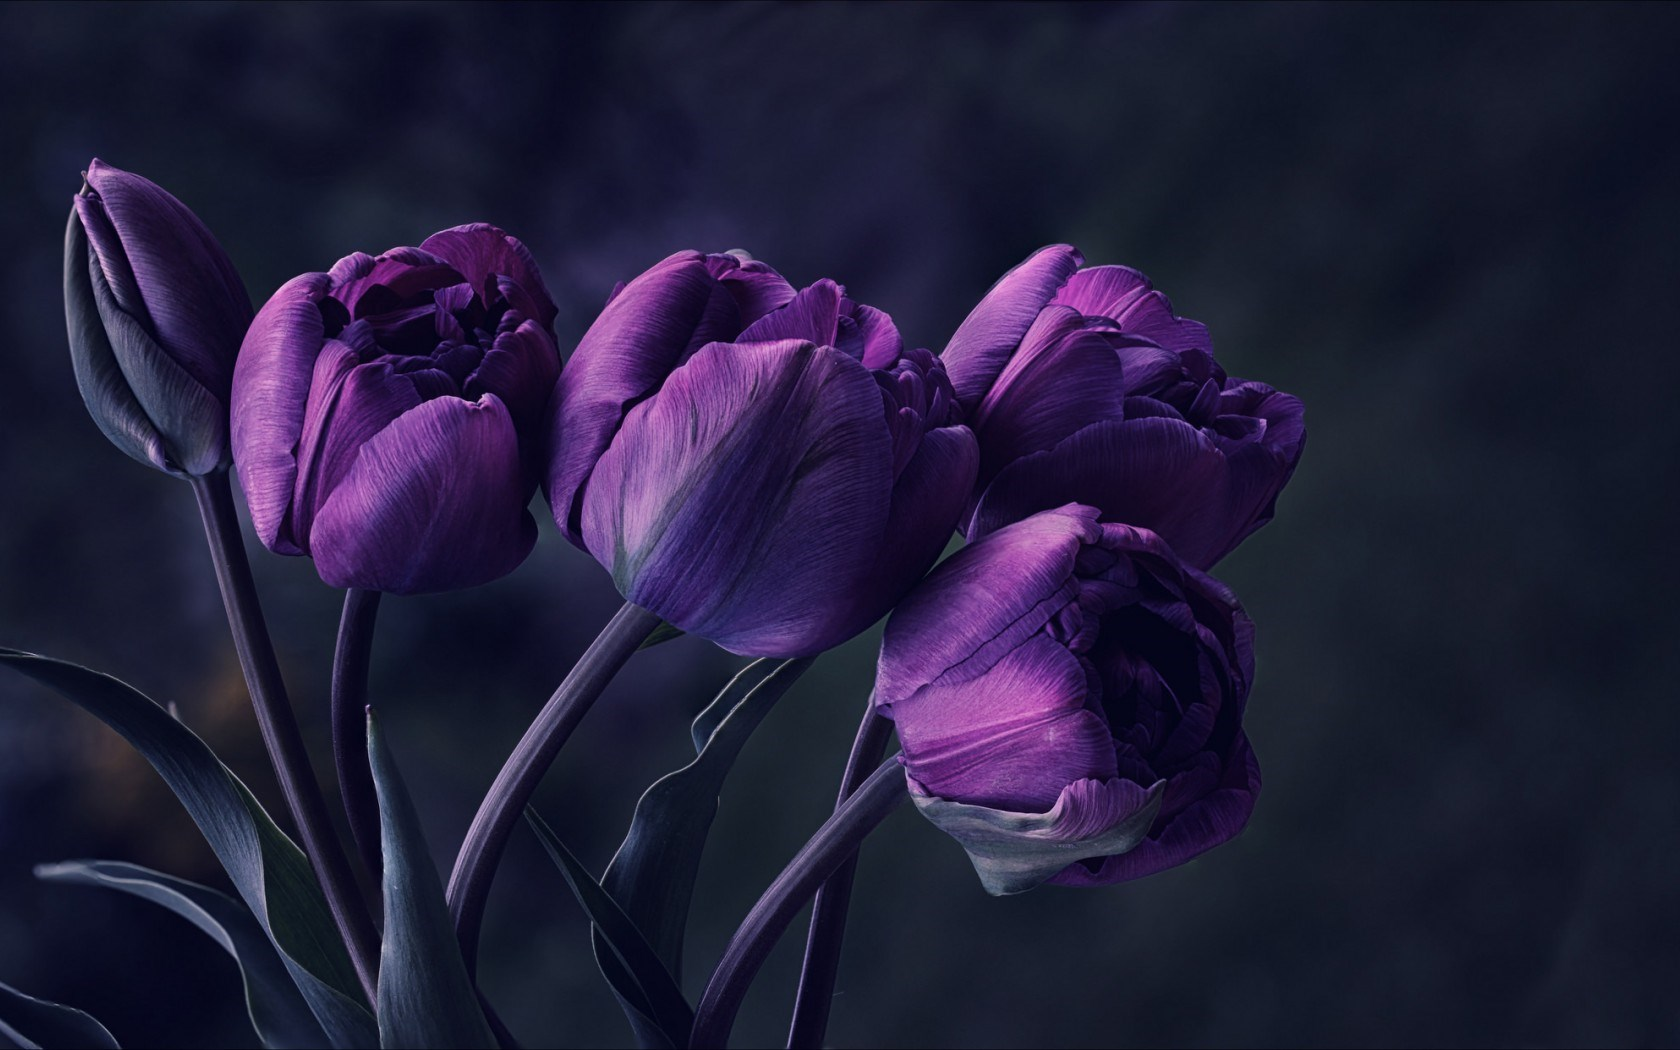 Image mystery flower night dark tulips purple petals photo mystery flower night dark tulips purple petals photo beautiful wallpaperg izmirmasajfo